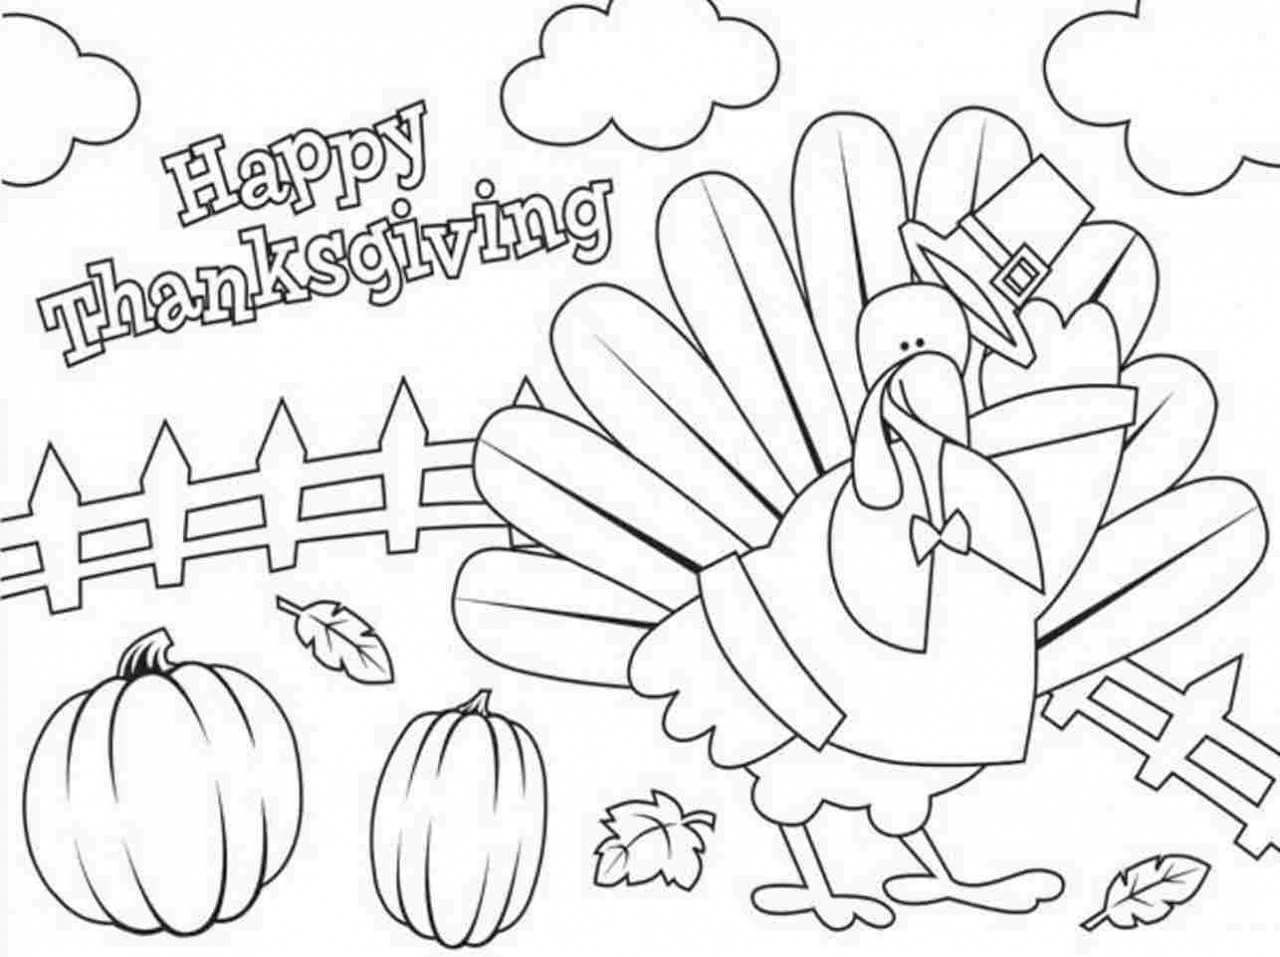 Cool Thanksgiving Coloring Pages For Children Free Thanksgiving Coloring Pages Thanksgiving Coloring Pages Turkey Coloring Pages